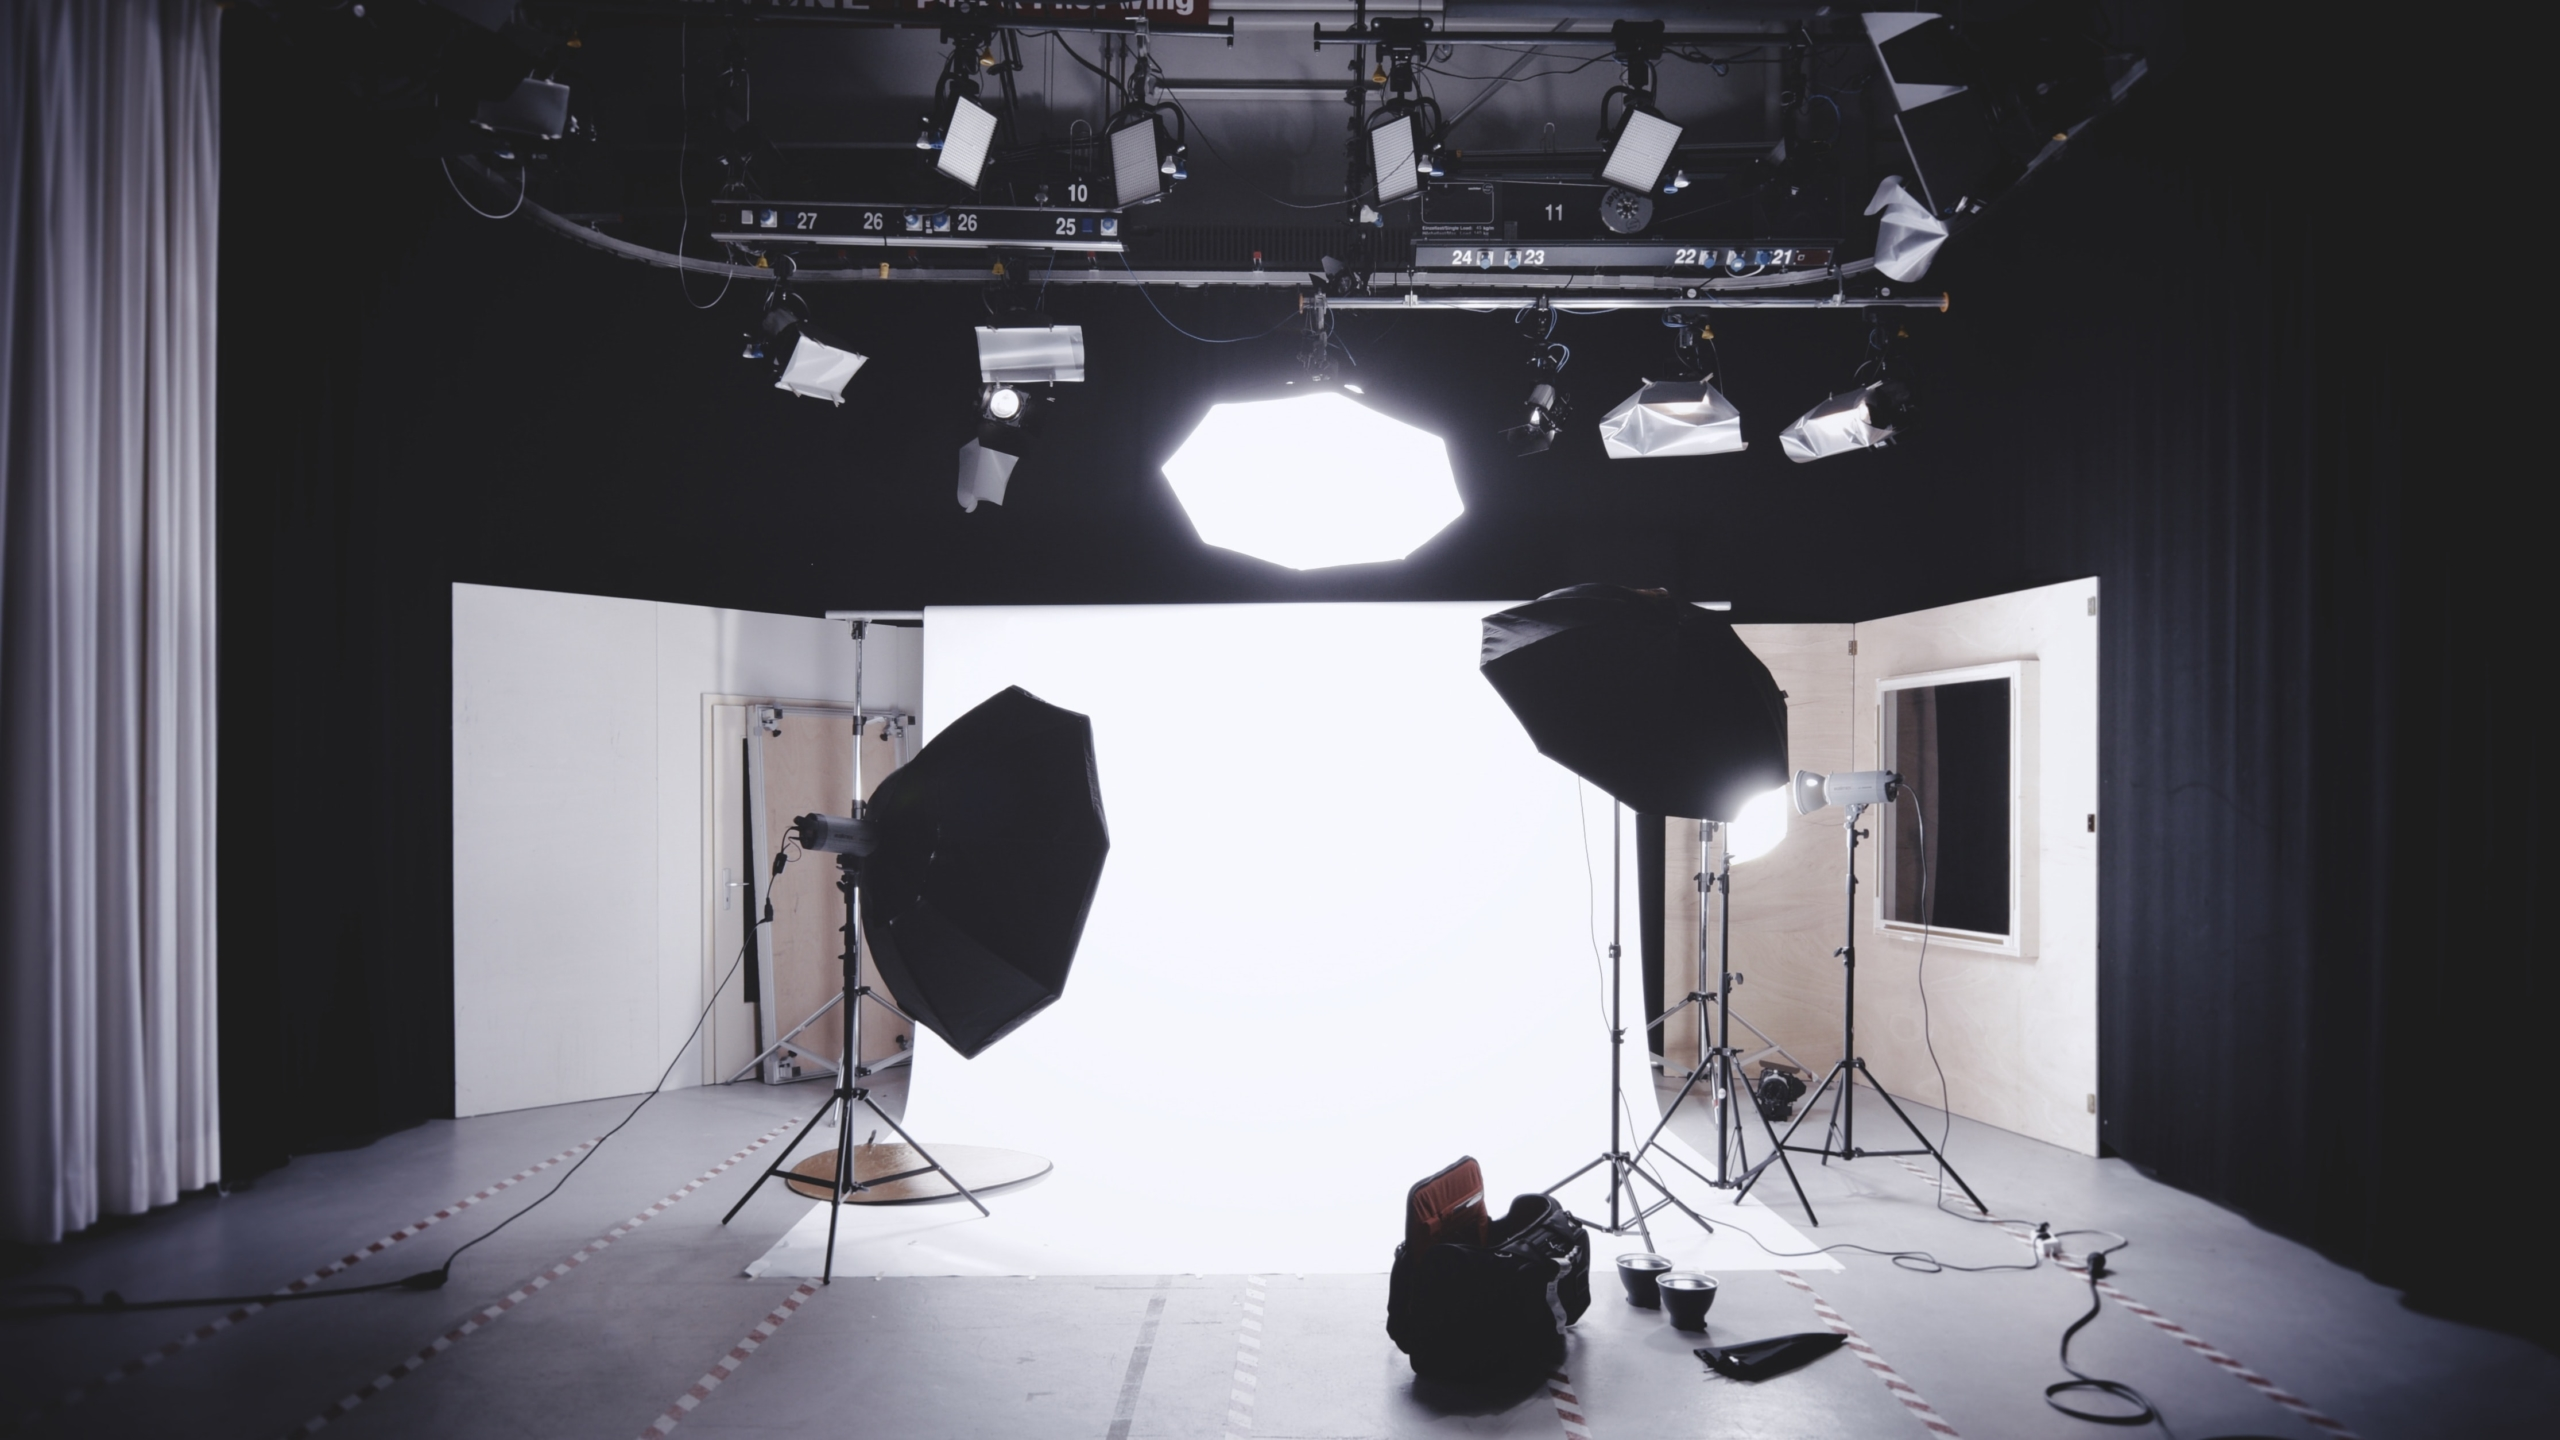 9 ways to get a job in the film industry